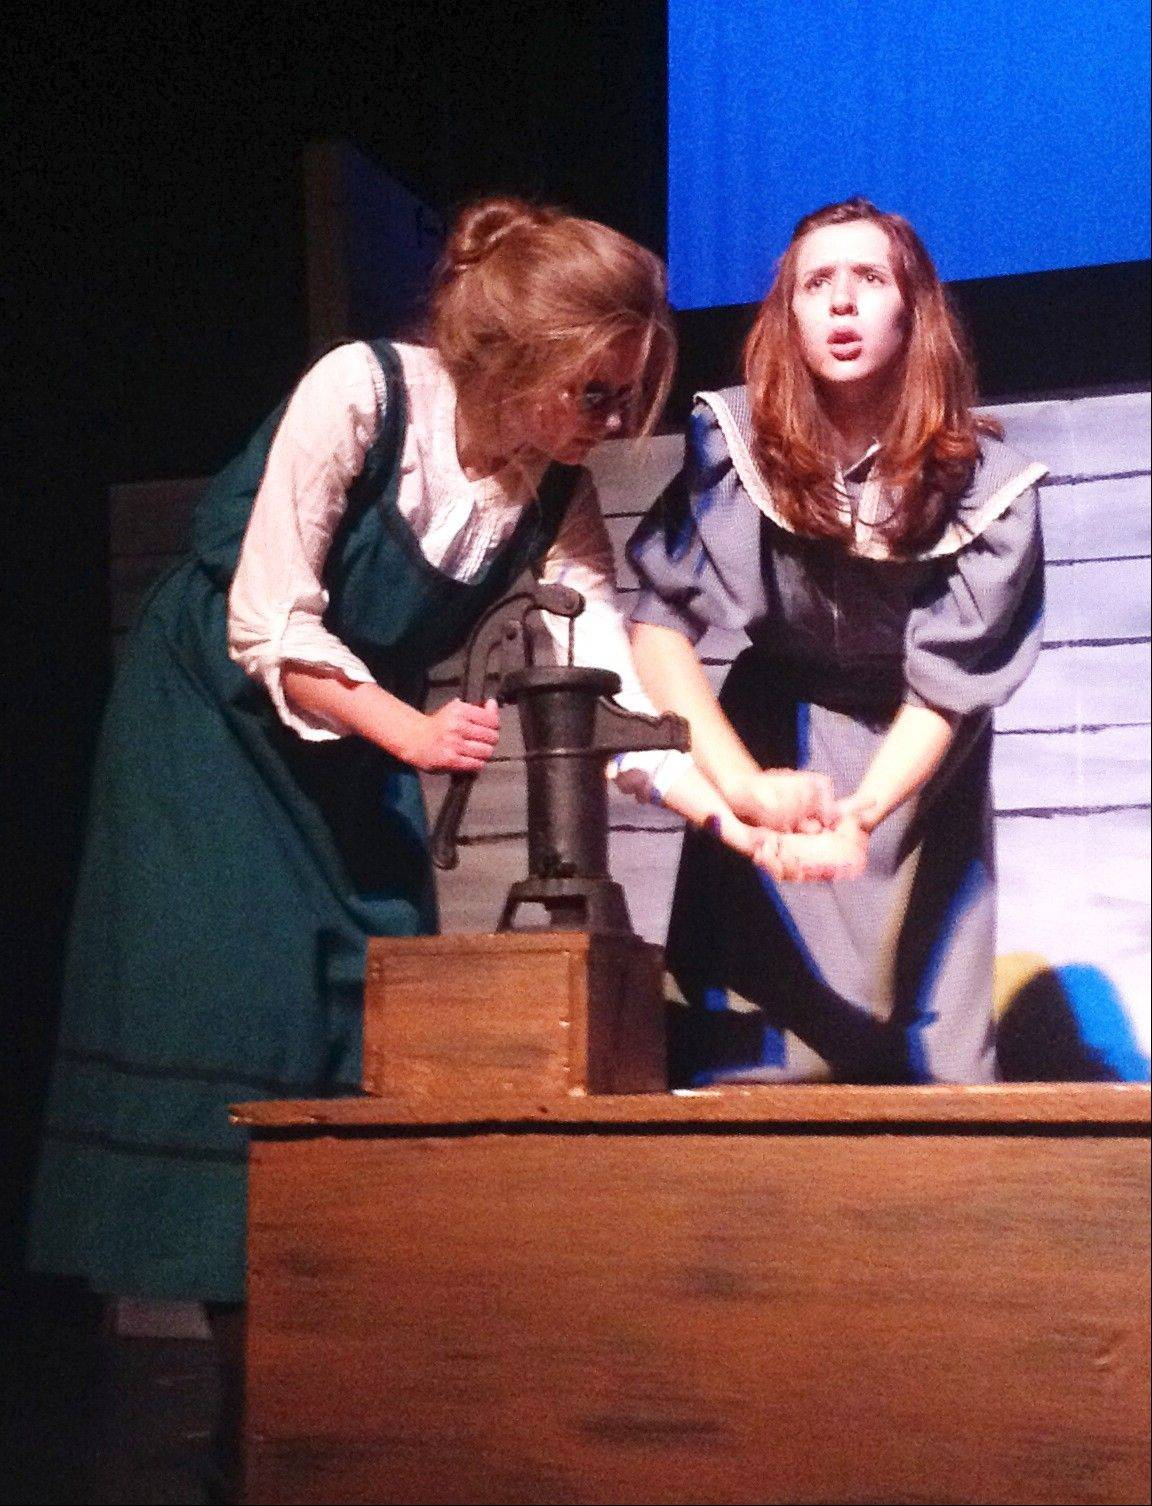 Regina Aiuppa of Itasca plays Helen Keller's mother. She appeals for compassion from her husband, Captain Keller, played by Ryan Lavelle of Hoffman Estates, as she cradles her daughter Helen, played by Natalie Olson of Prospect Heights.